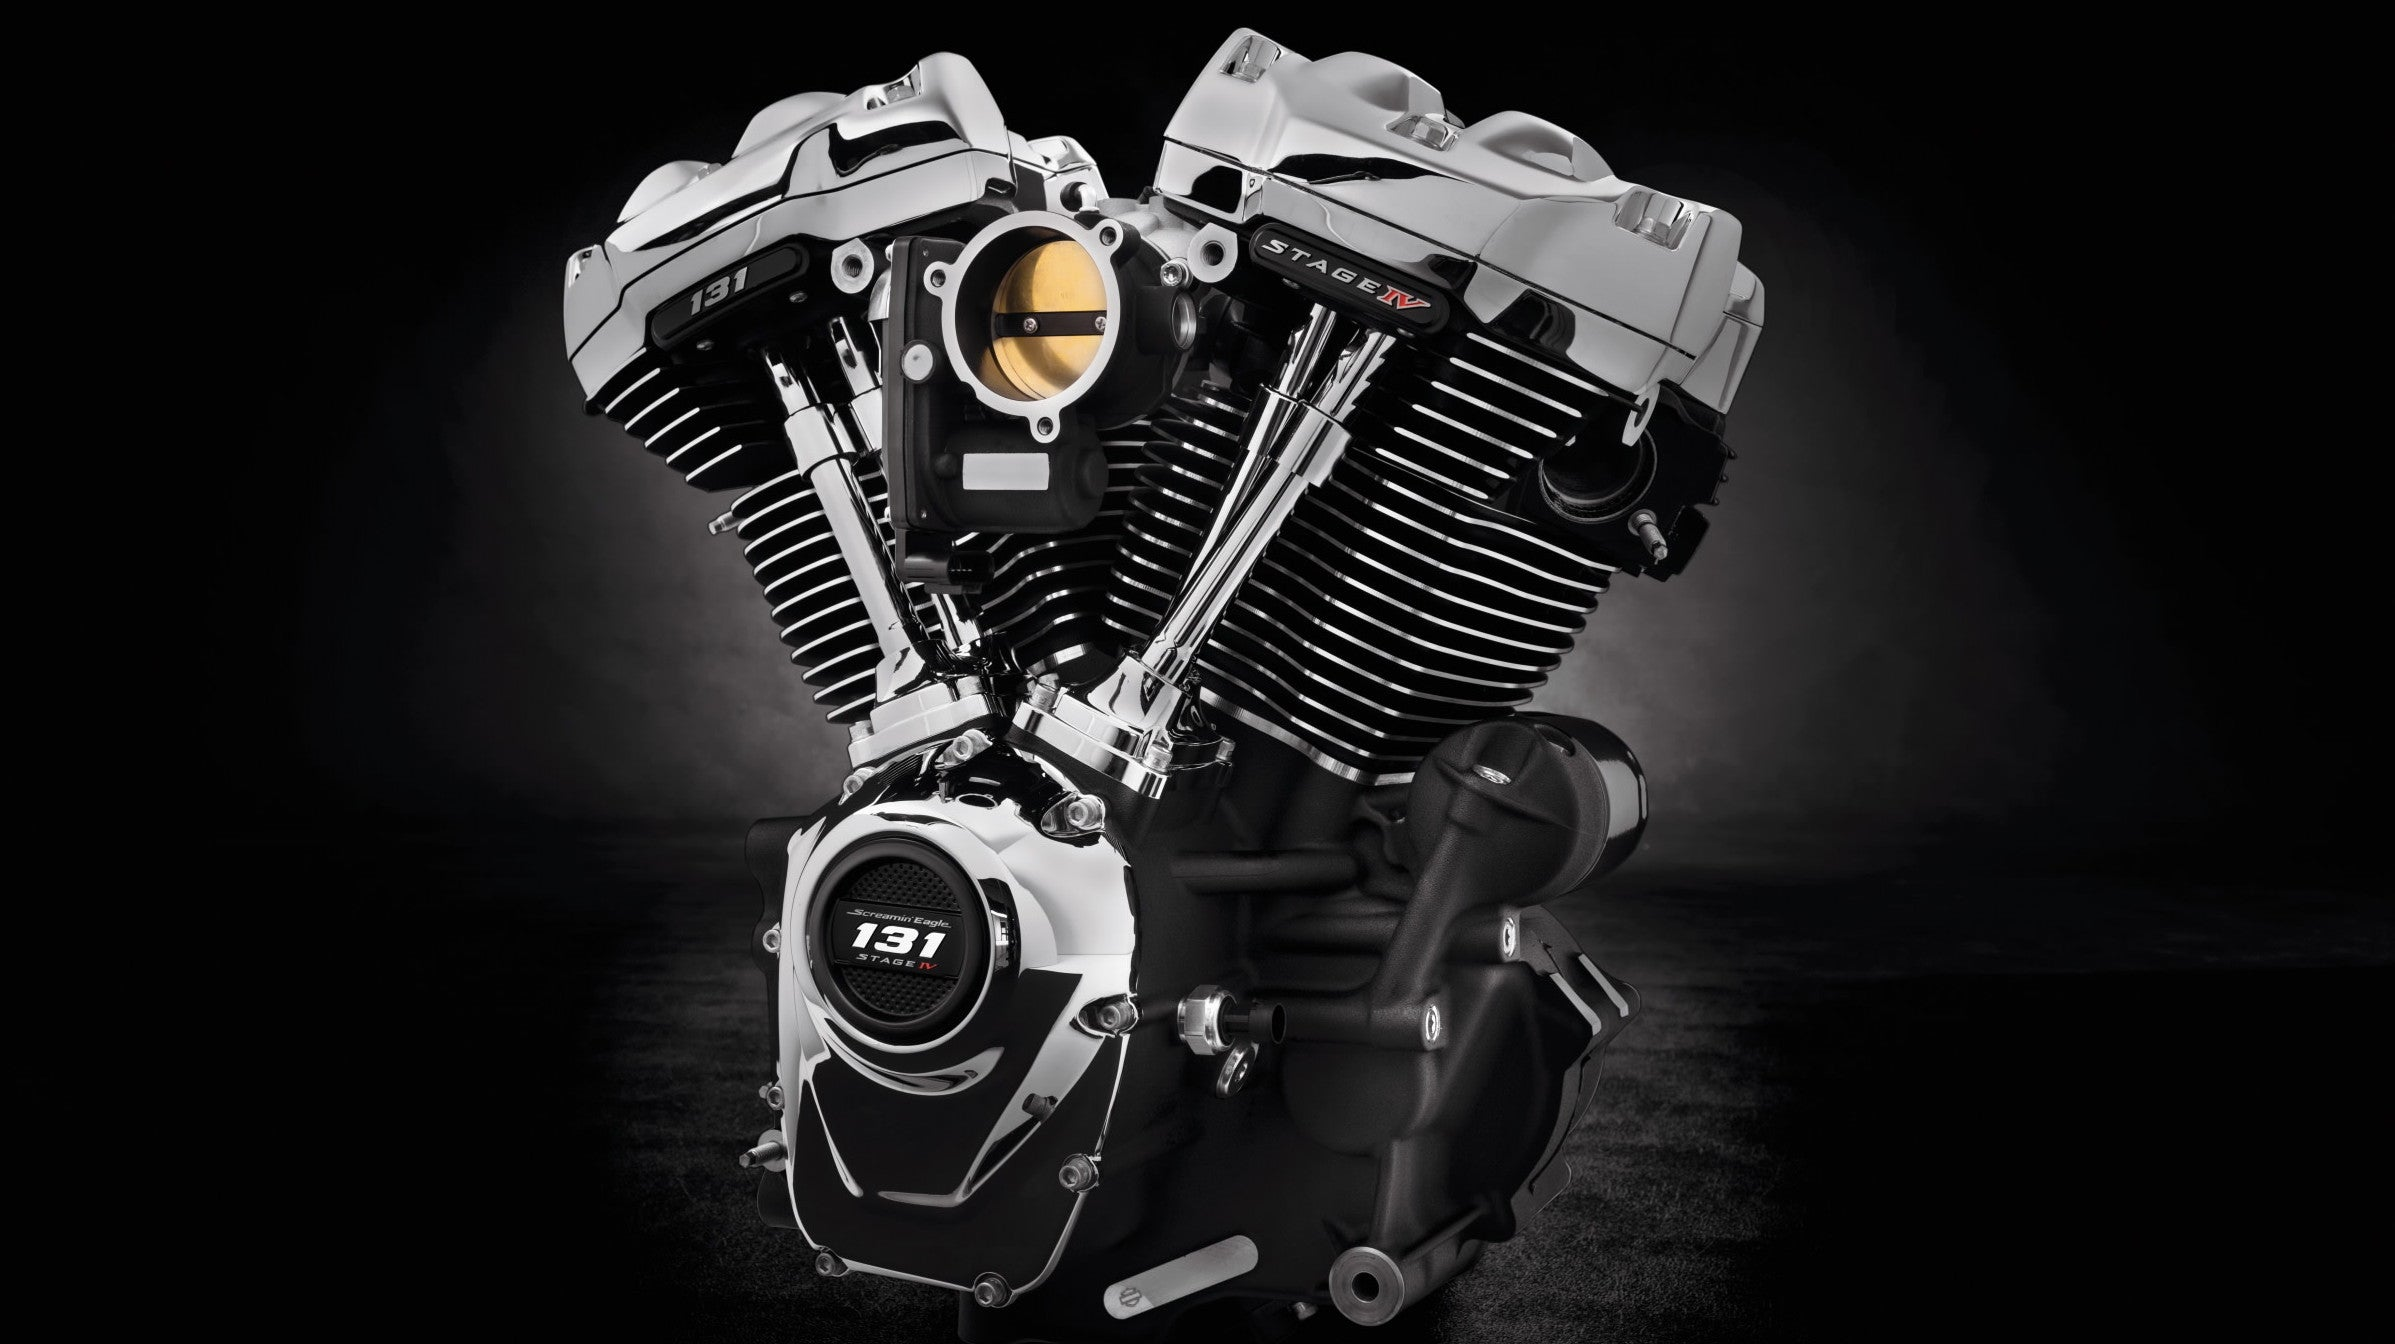 Harley-Davidson Steps Up To The V-Twin Challenge With A New 131 Cubic Inch Crate Motor